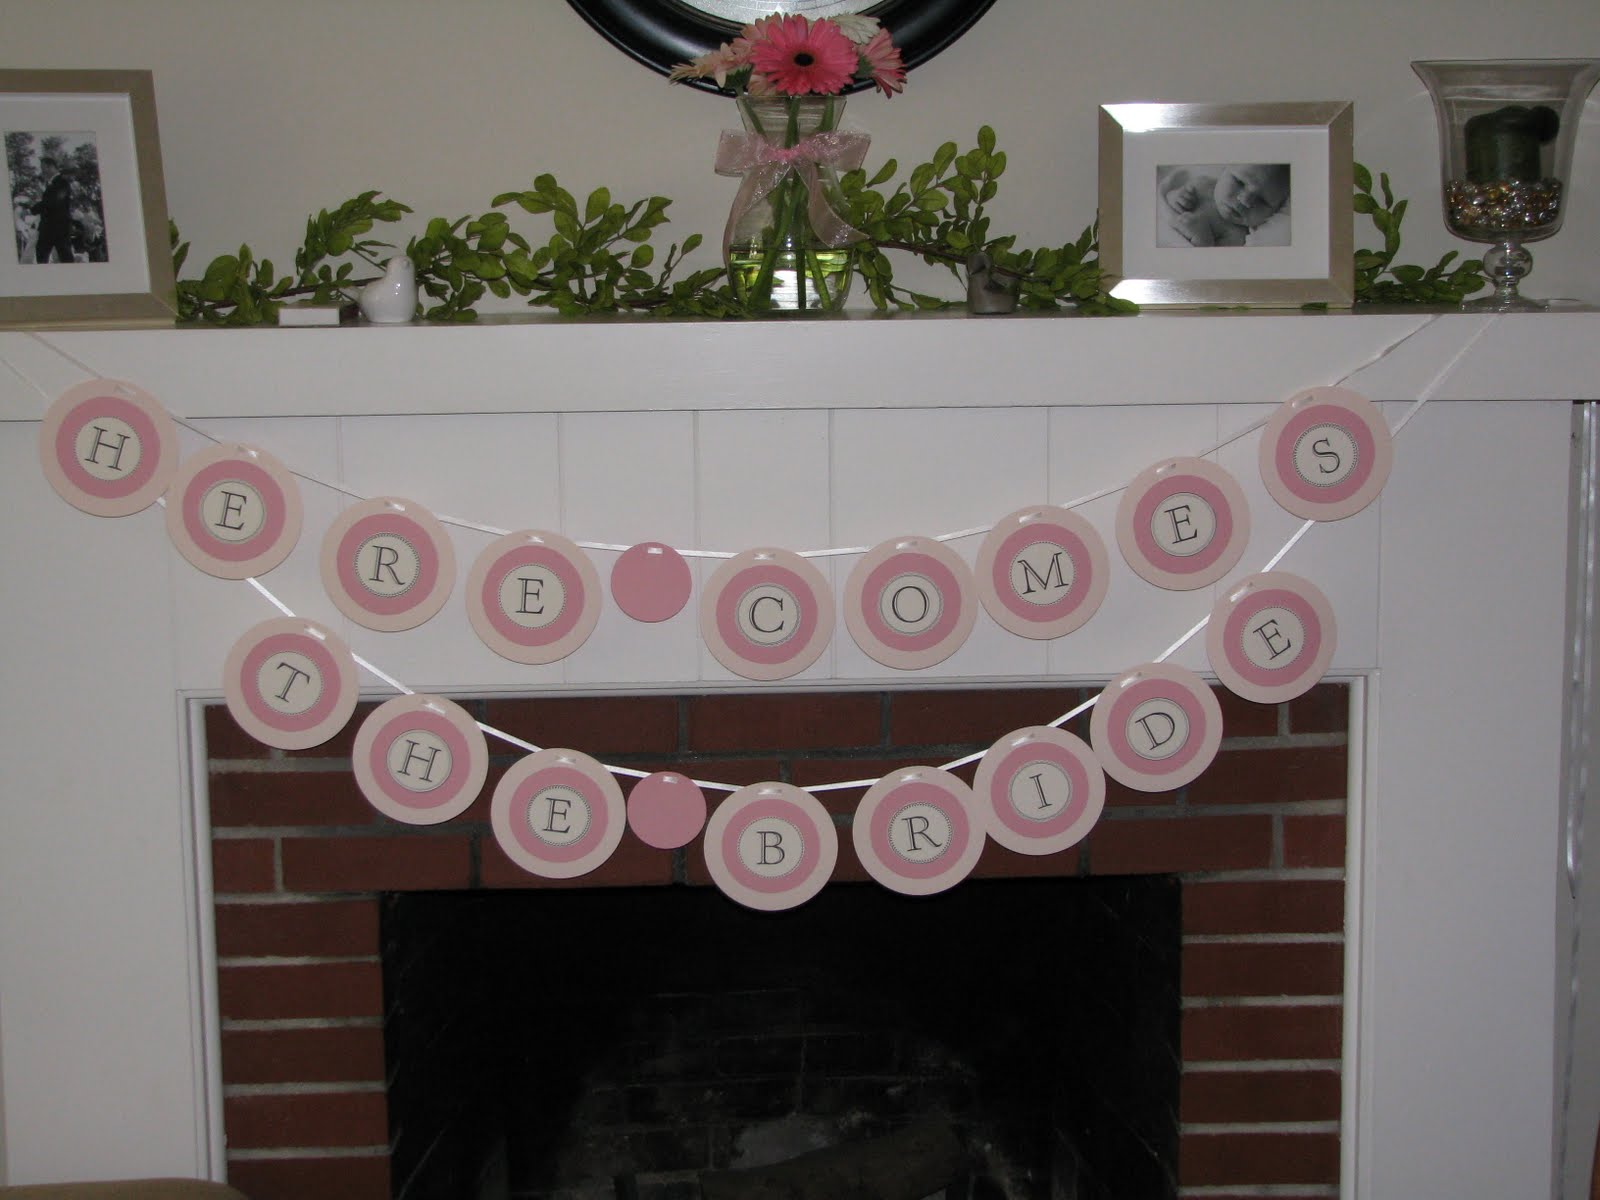 pink themed bridal shower here comes the bride banner